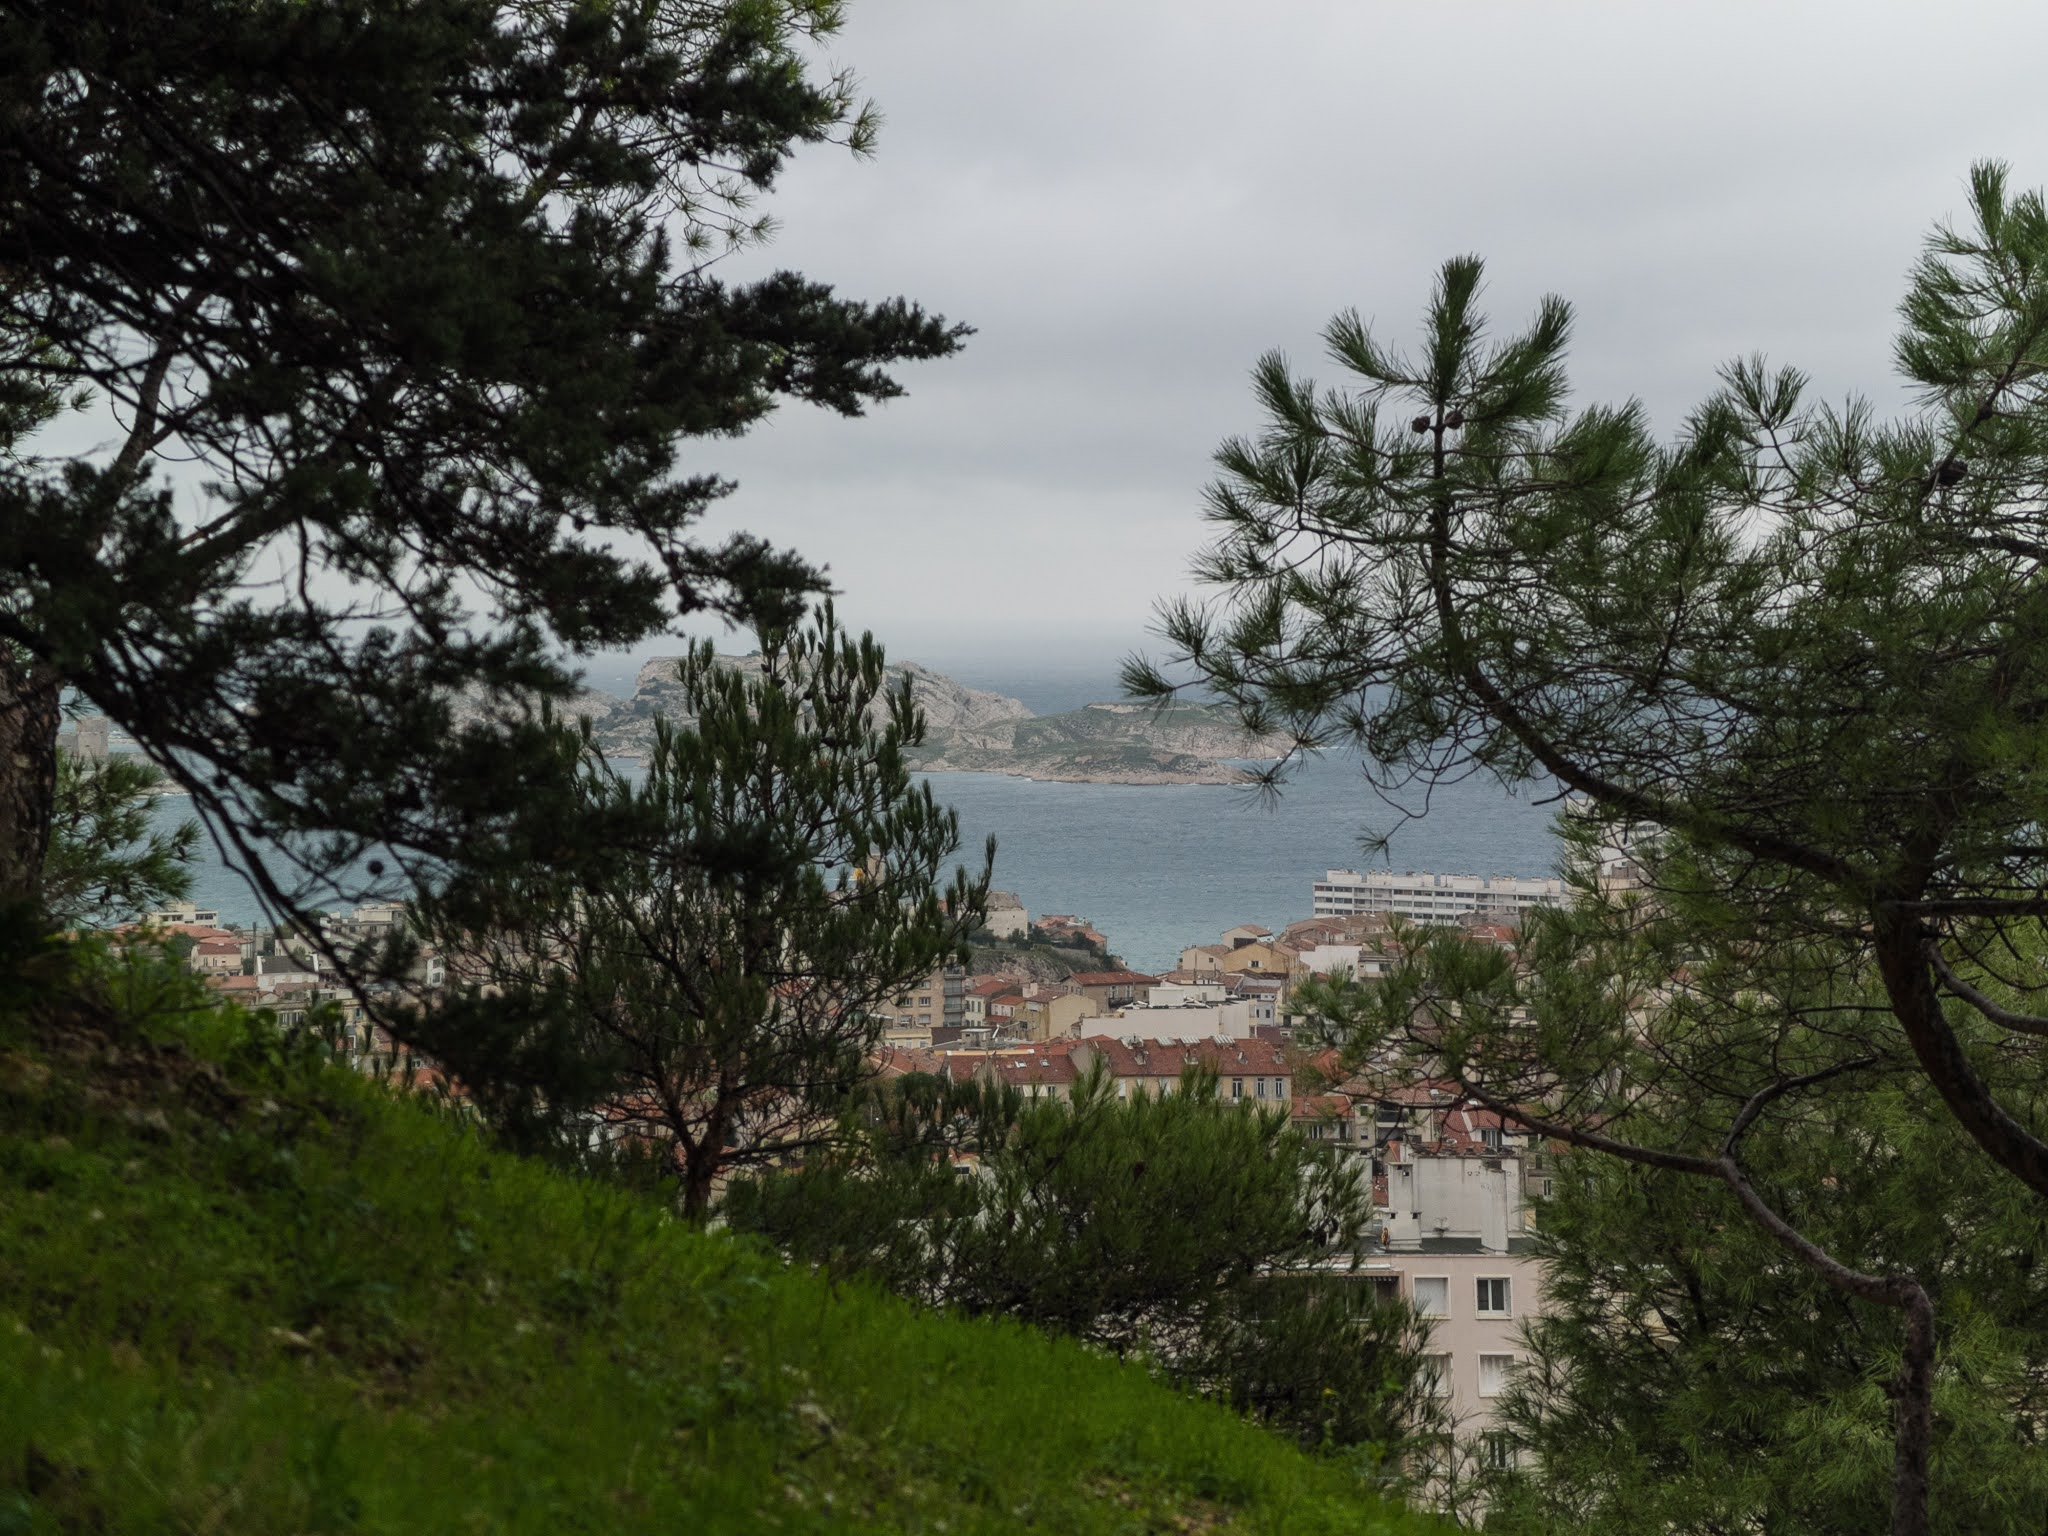 Looking towards the Frioul archipelago through pine trees on La Garde hill.